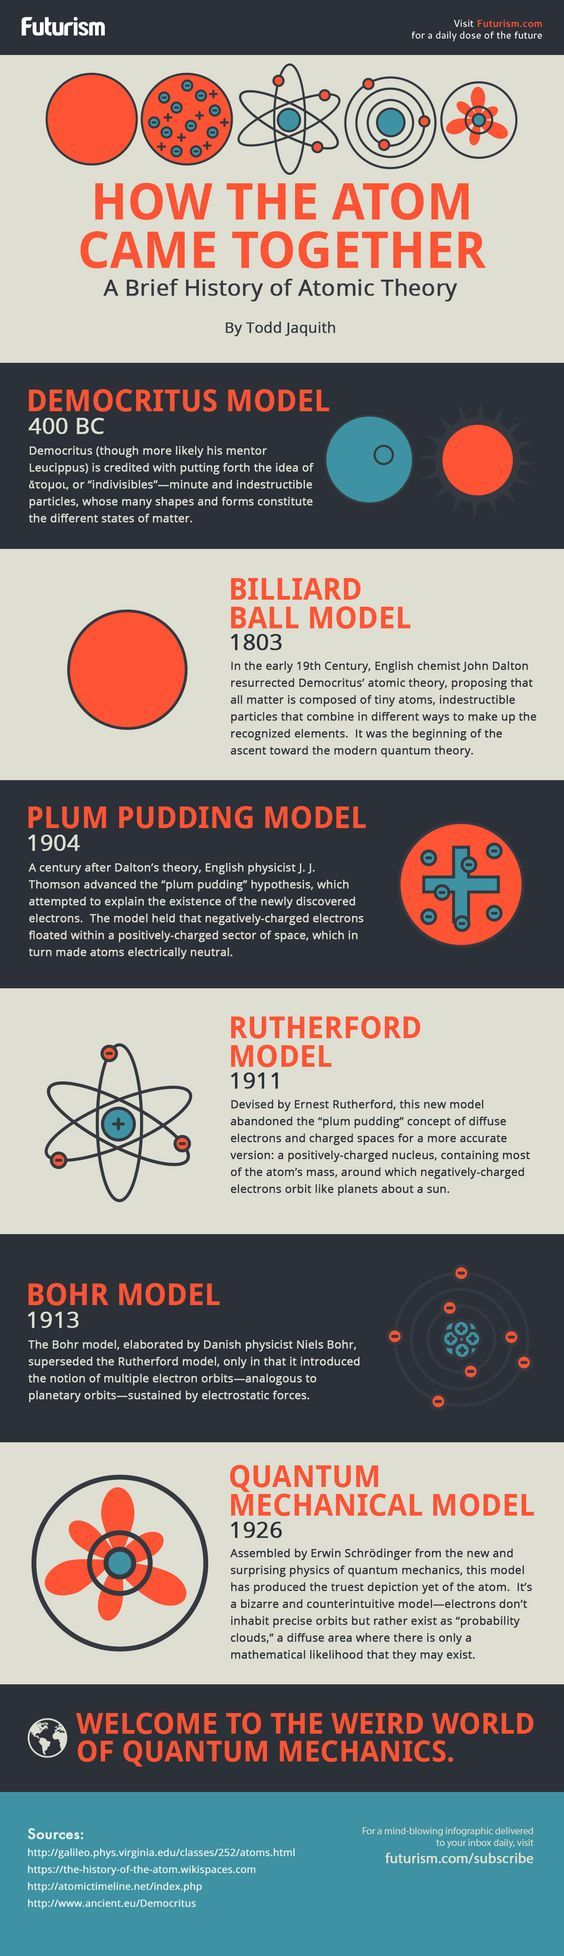 """""""How the Atom Came Together: A Brief History of the Atomic Theory"""": Todd Jaquith #physics"""